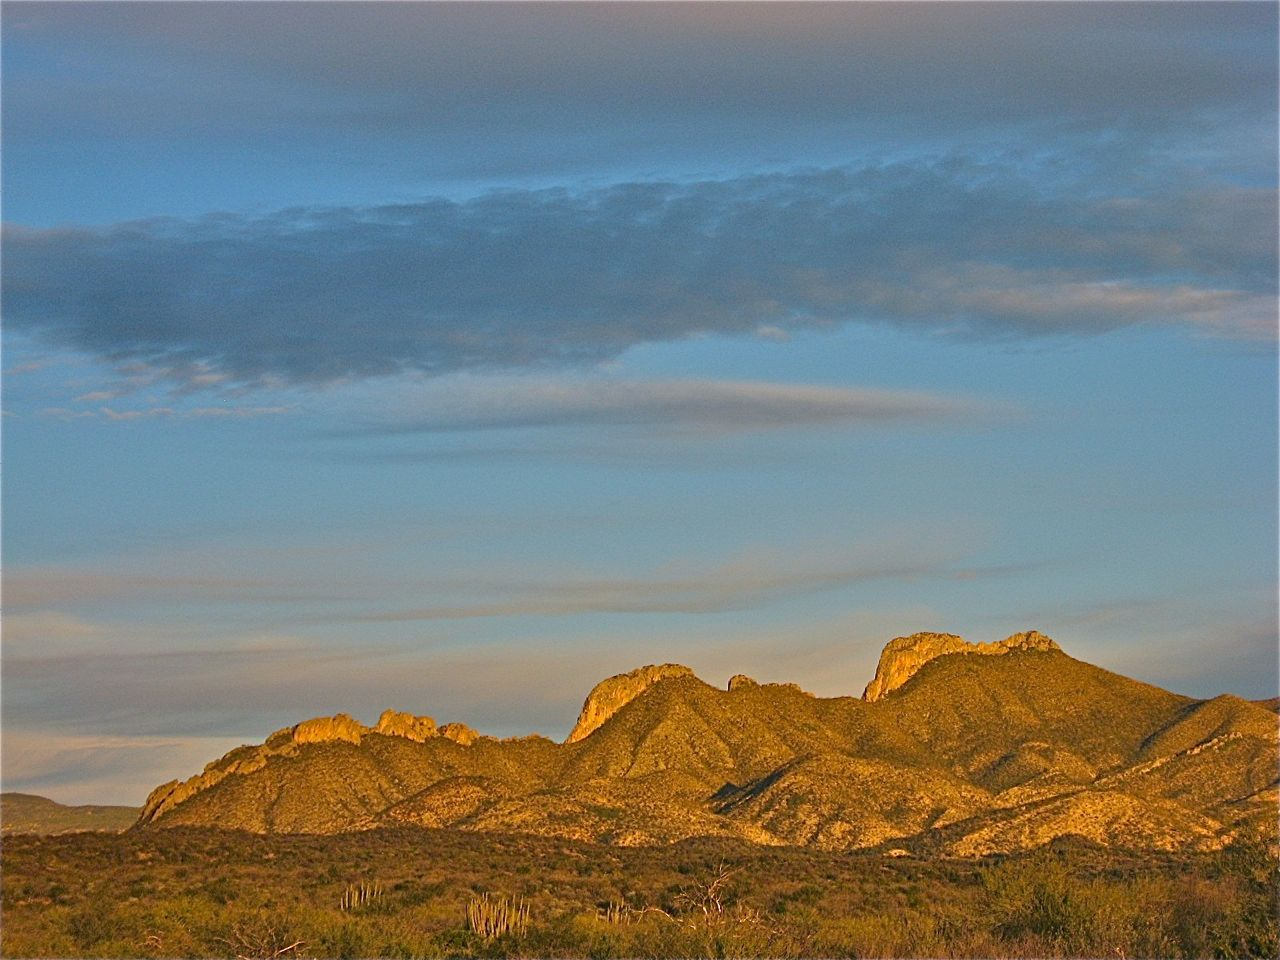 Sunset on the Devils's Spine, a rugged landmark in the Sonoran Sierras.